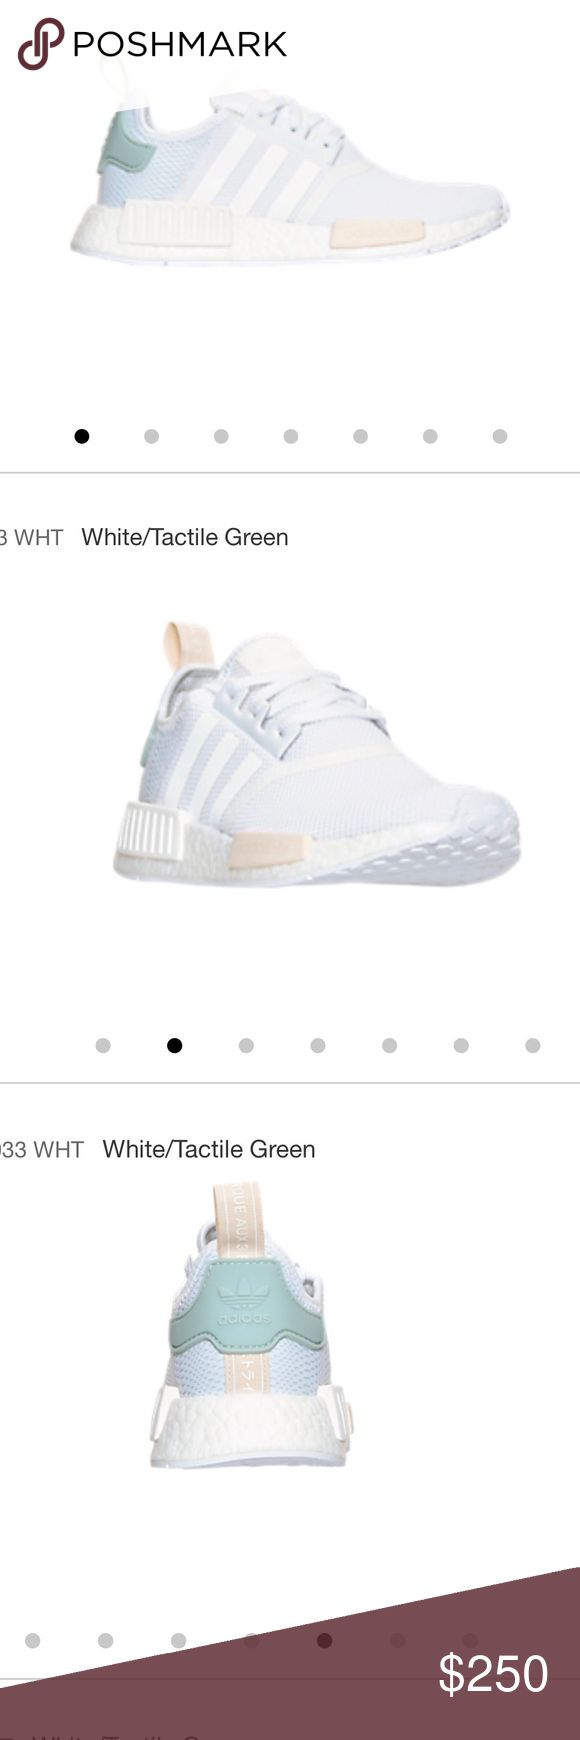 Adidas NMD white/tactile green Authentic Adidas NMD , Brand new , 2 size 7 in womens fits to 7.5 to 8 , 1 size 7.5 in womens  8 to 8.5 and 1 6.5 in womens fits to size 7 to 7.5 Adidas Shoes Athletic Shoes